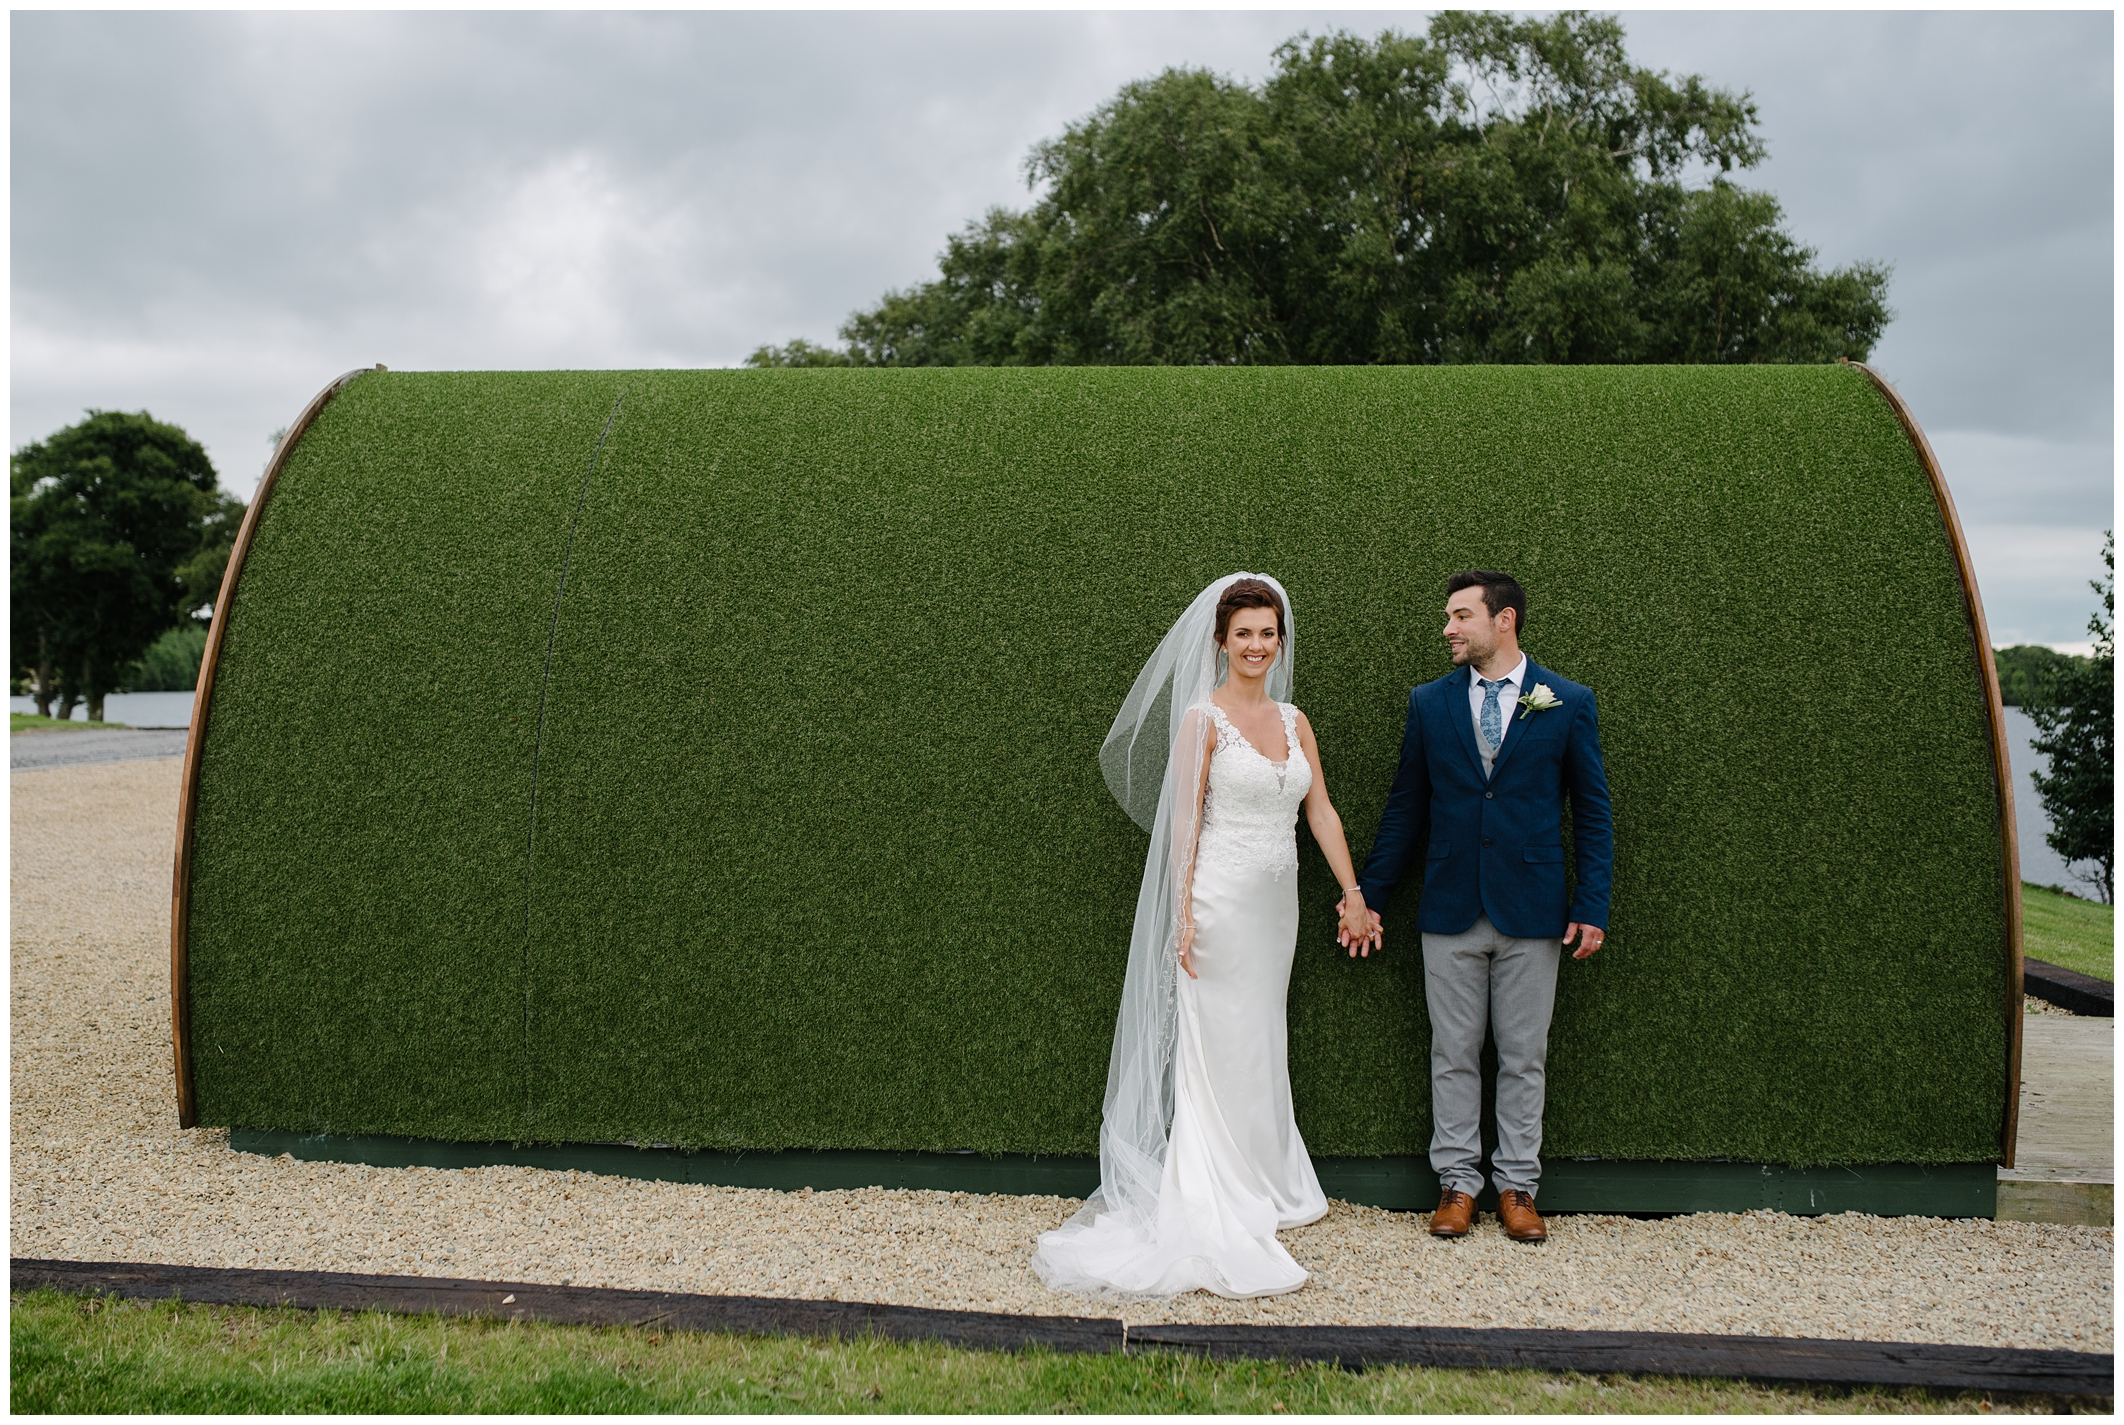 Lynsey_Andy_Rossharbour_Fermanagh_wedding_jude_browne_photography_0105.jpg